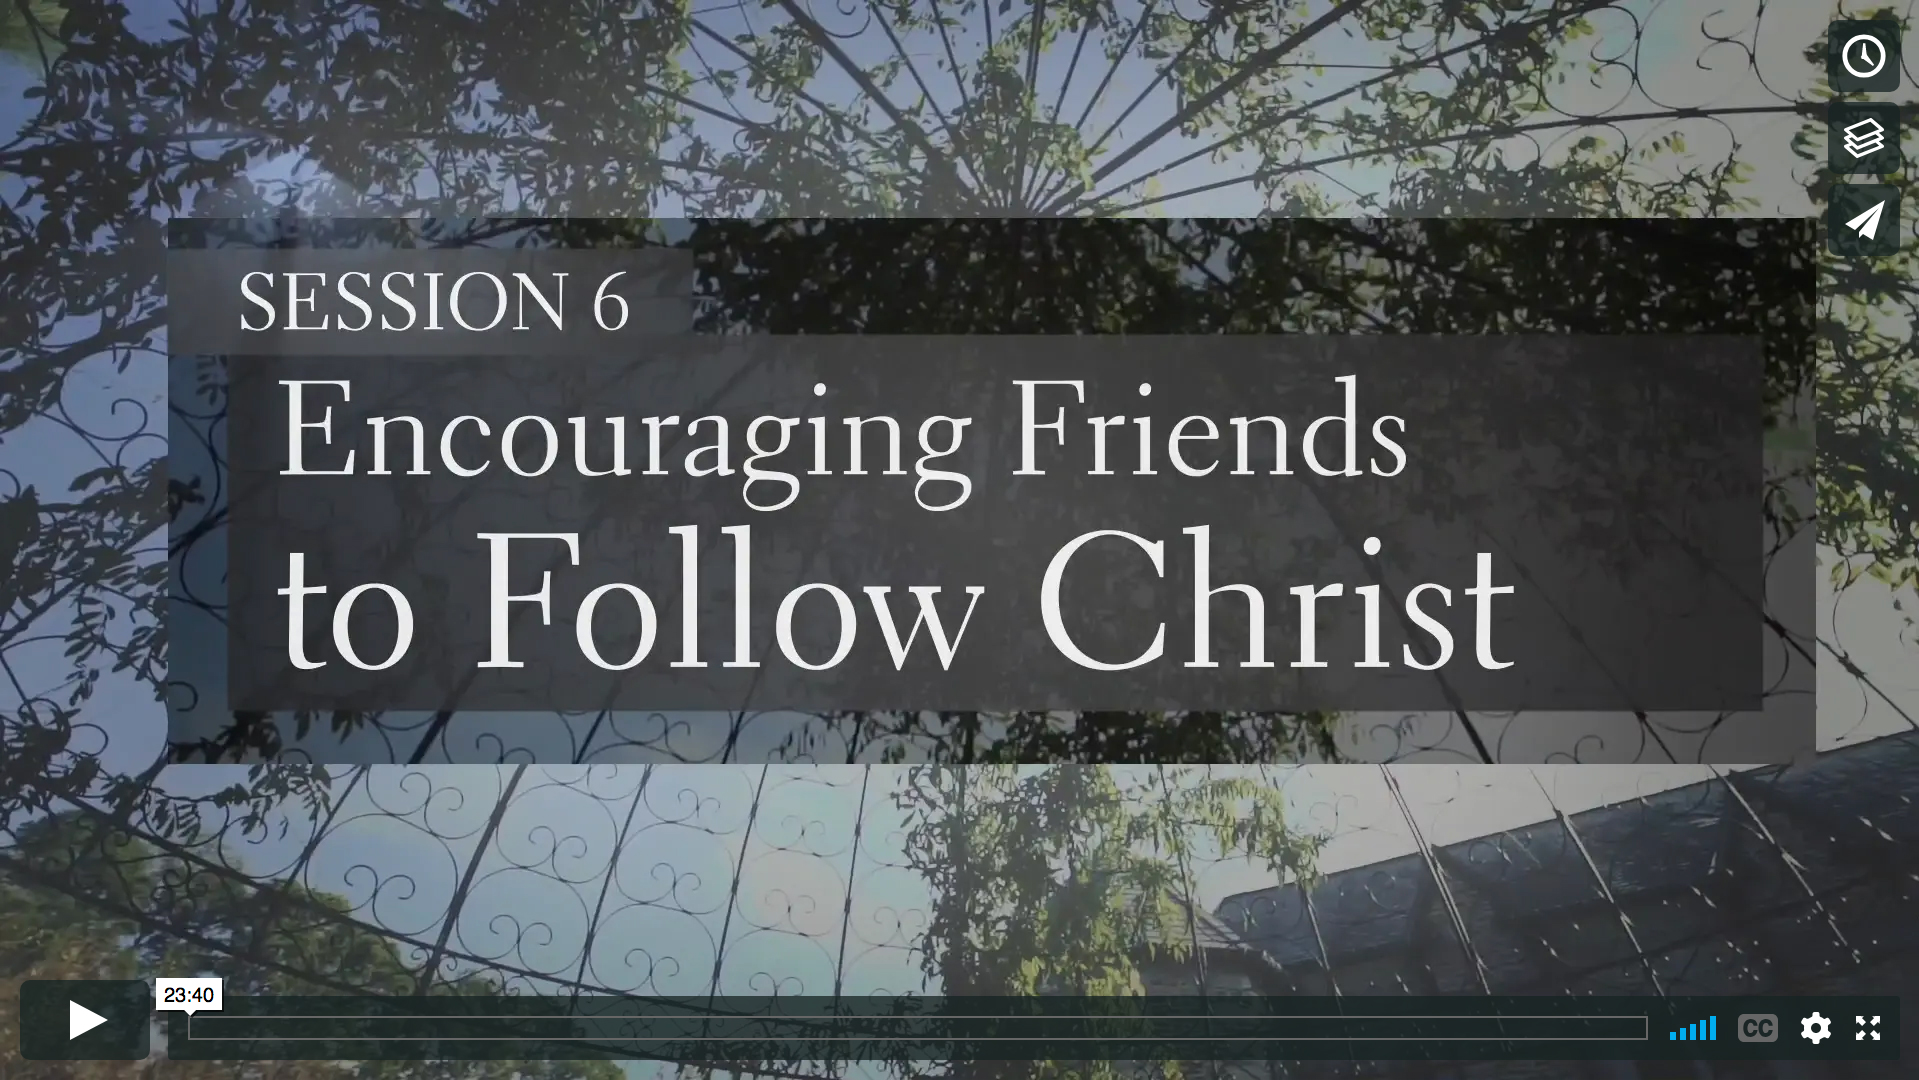 Session 6 - Encouraging Friends to Follow Christ